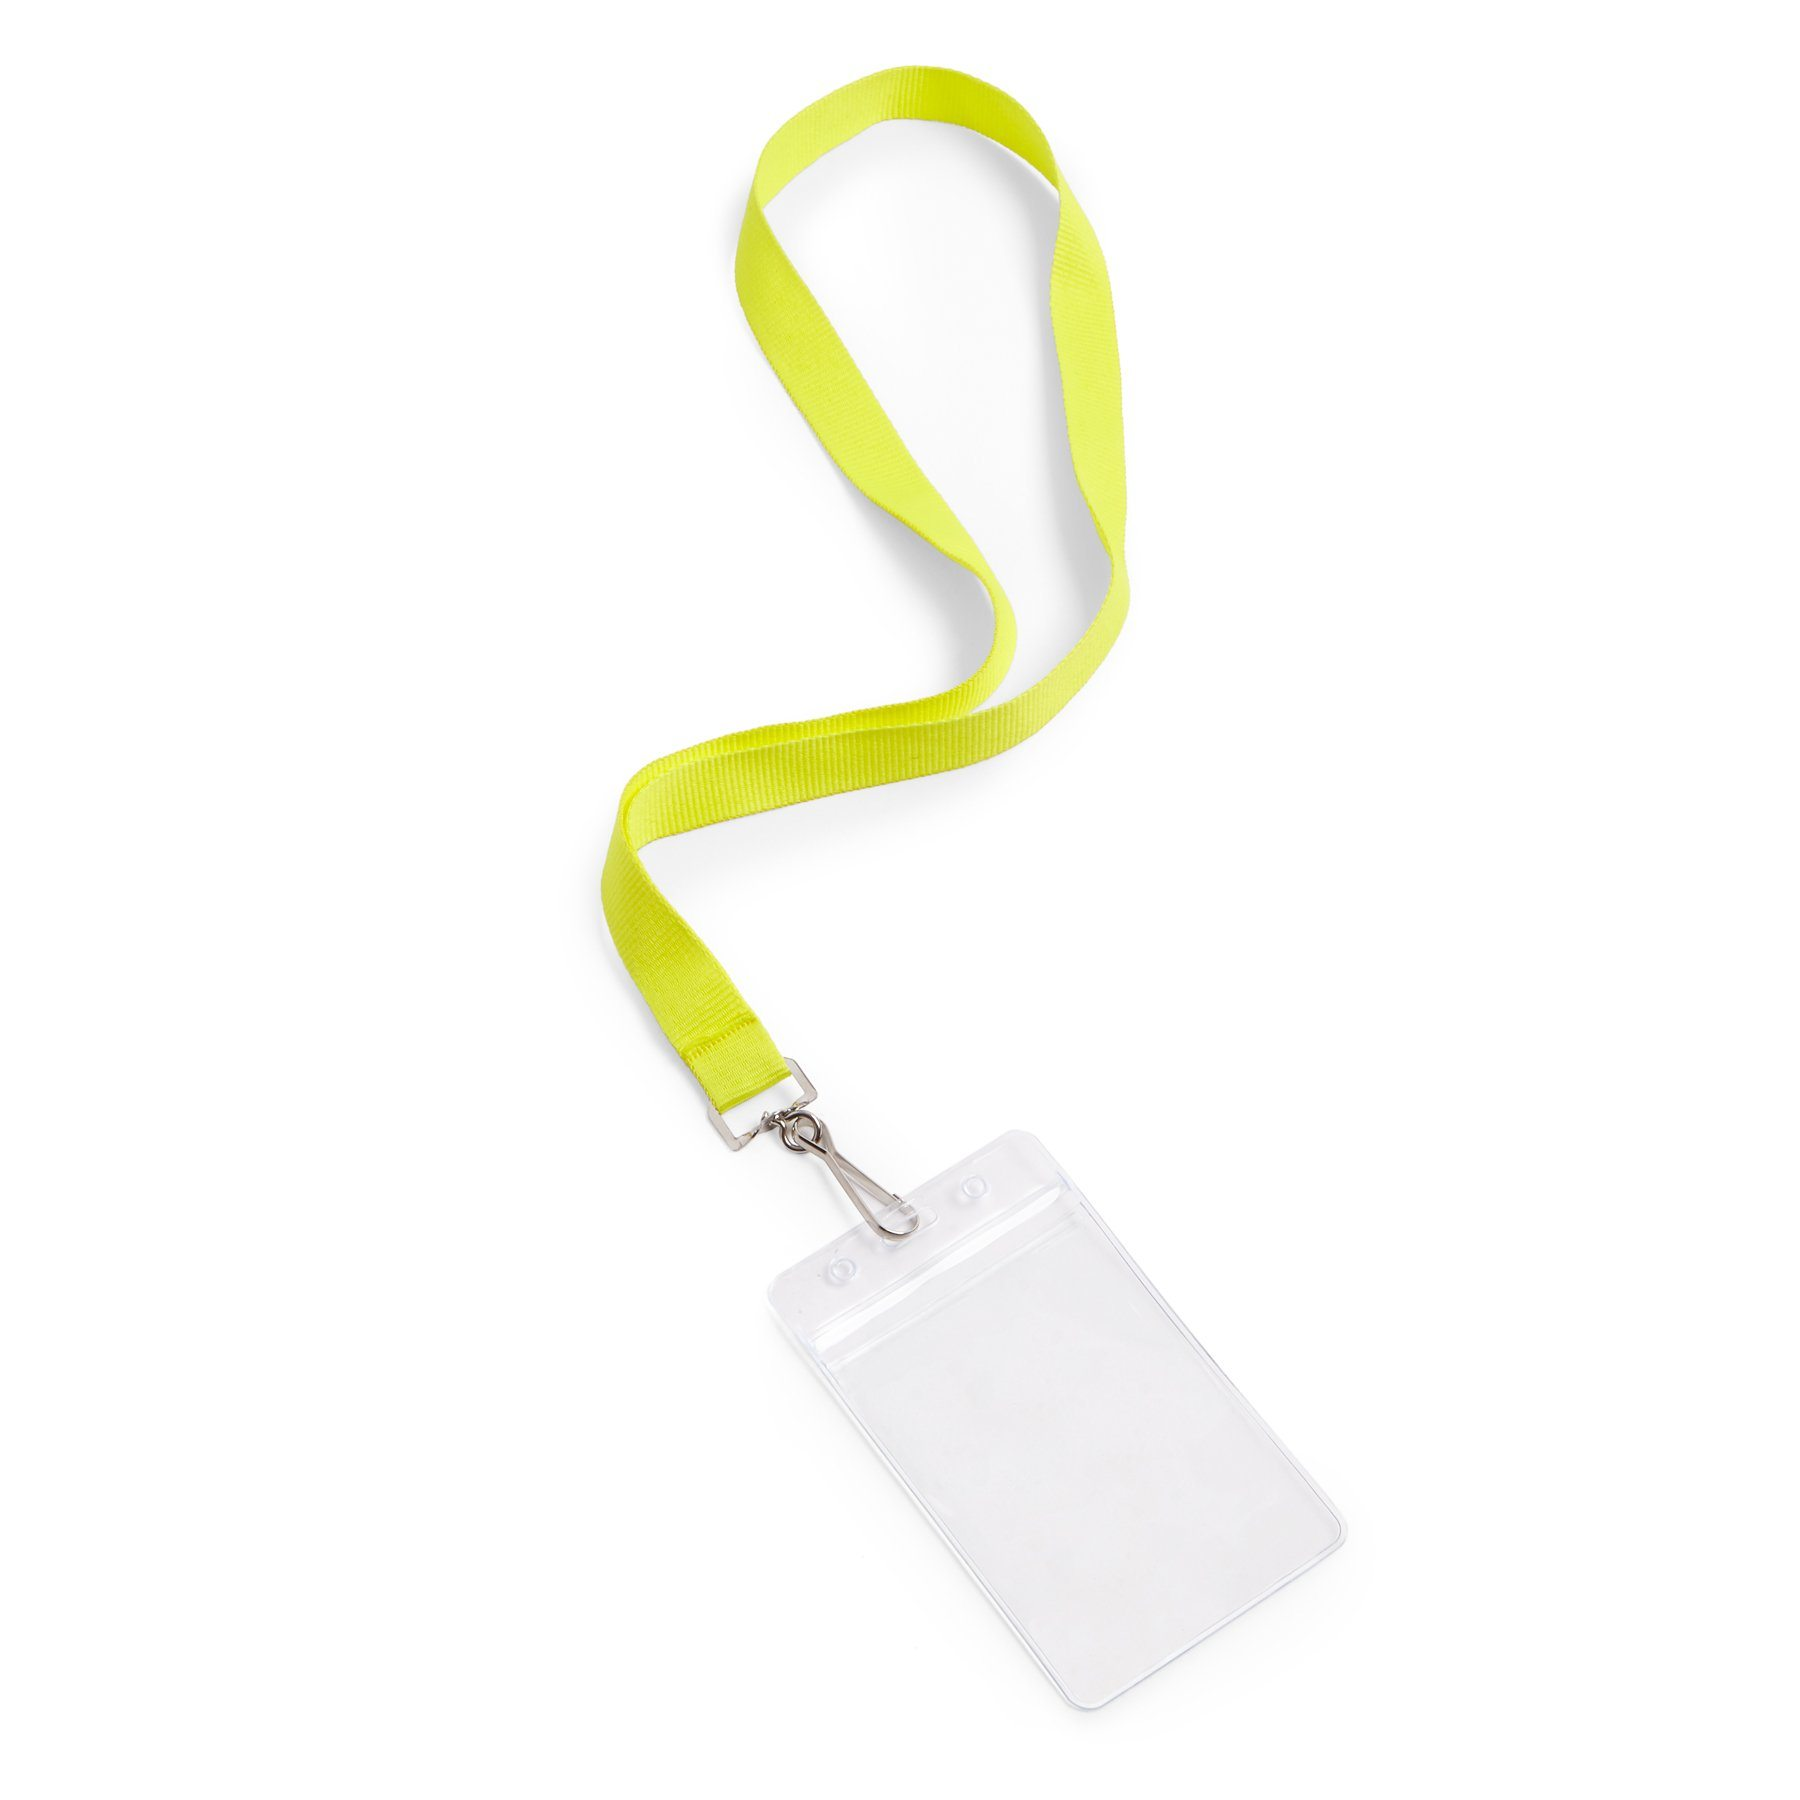 Club Pack of 12 Sobriety Check Pass Lanyard with Card Holder Party Accessories 25